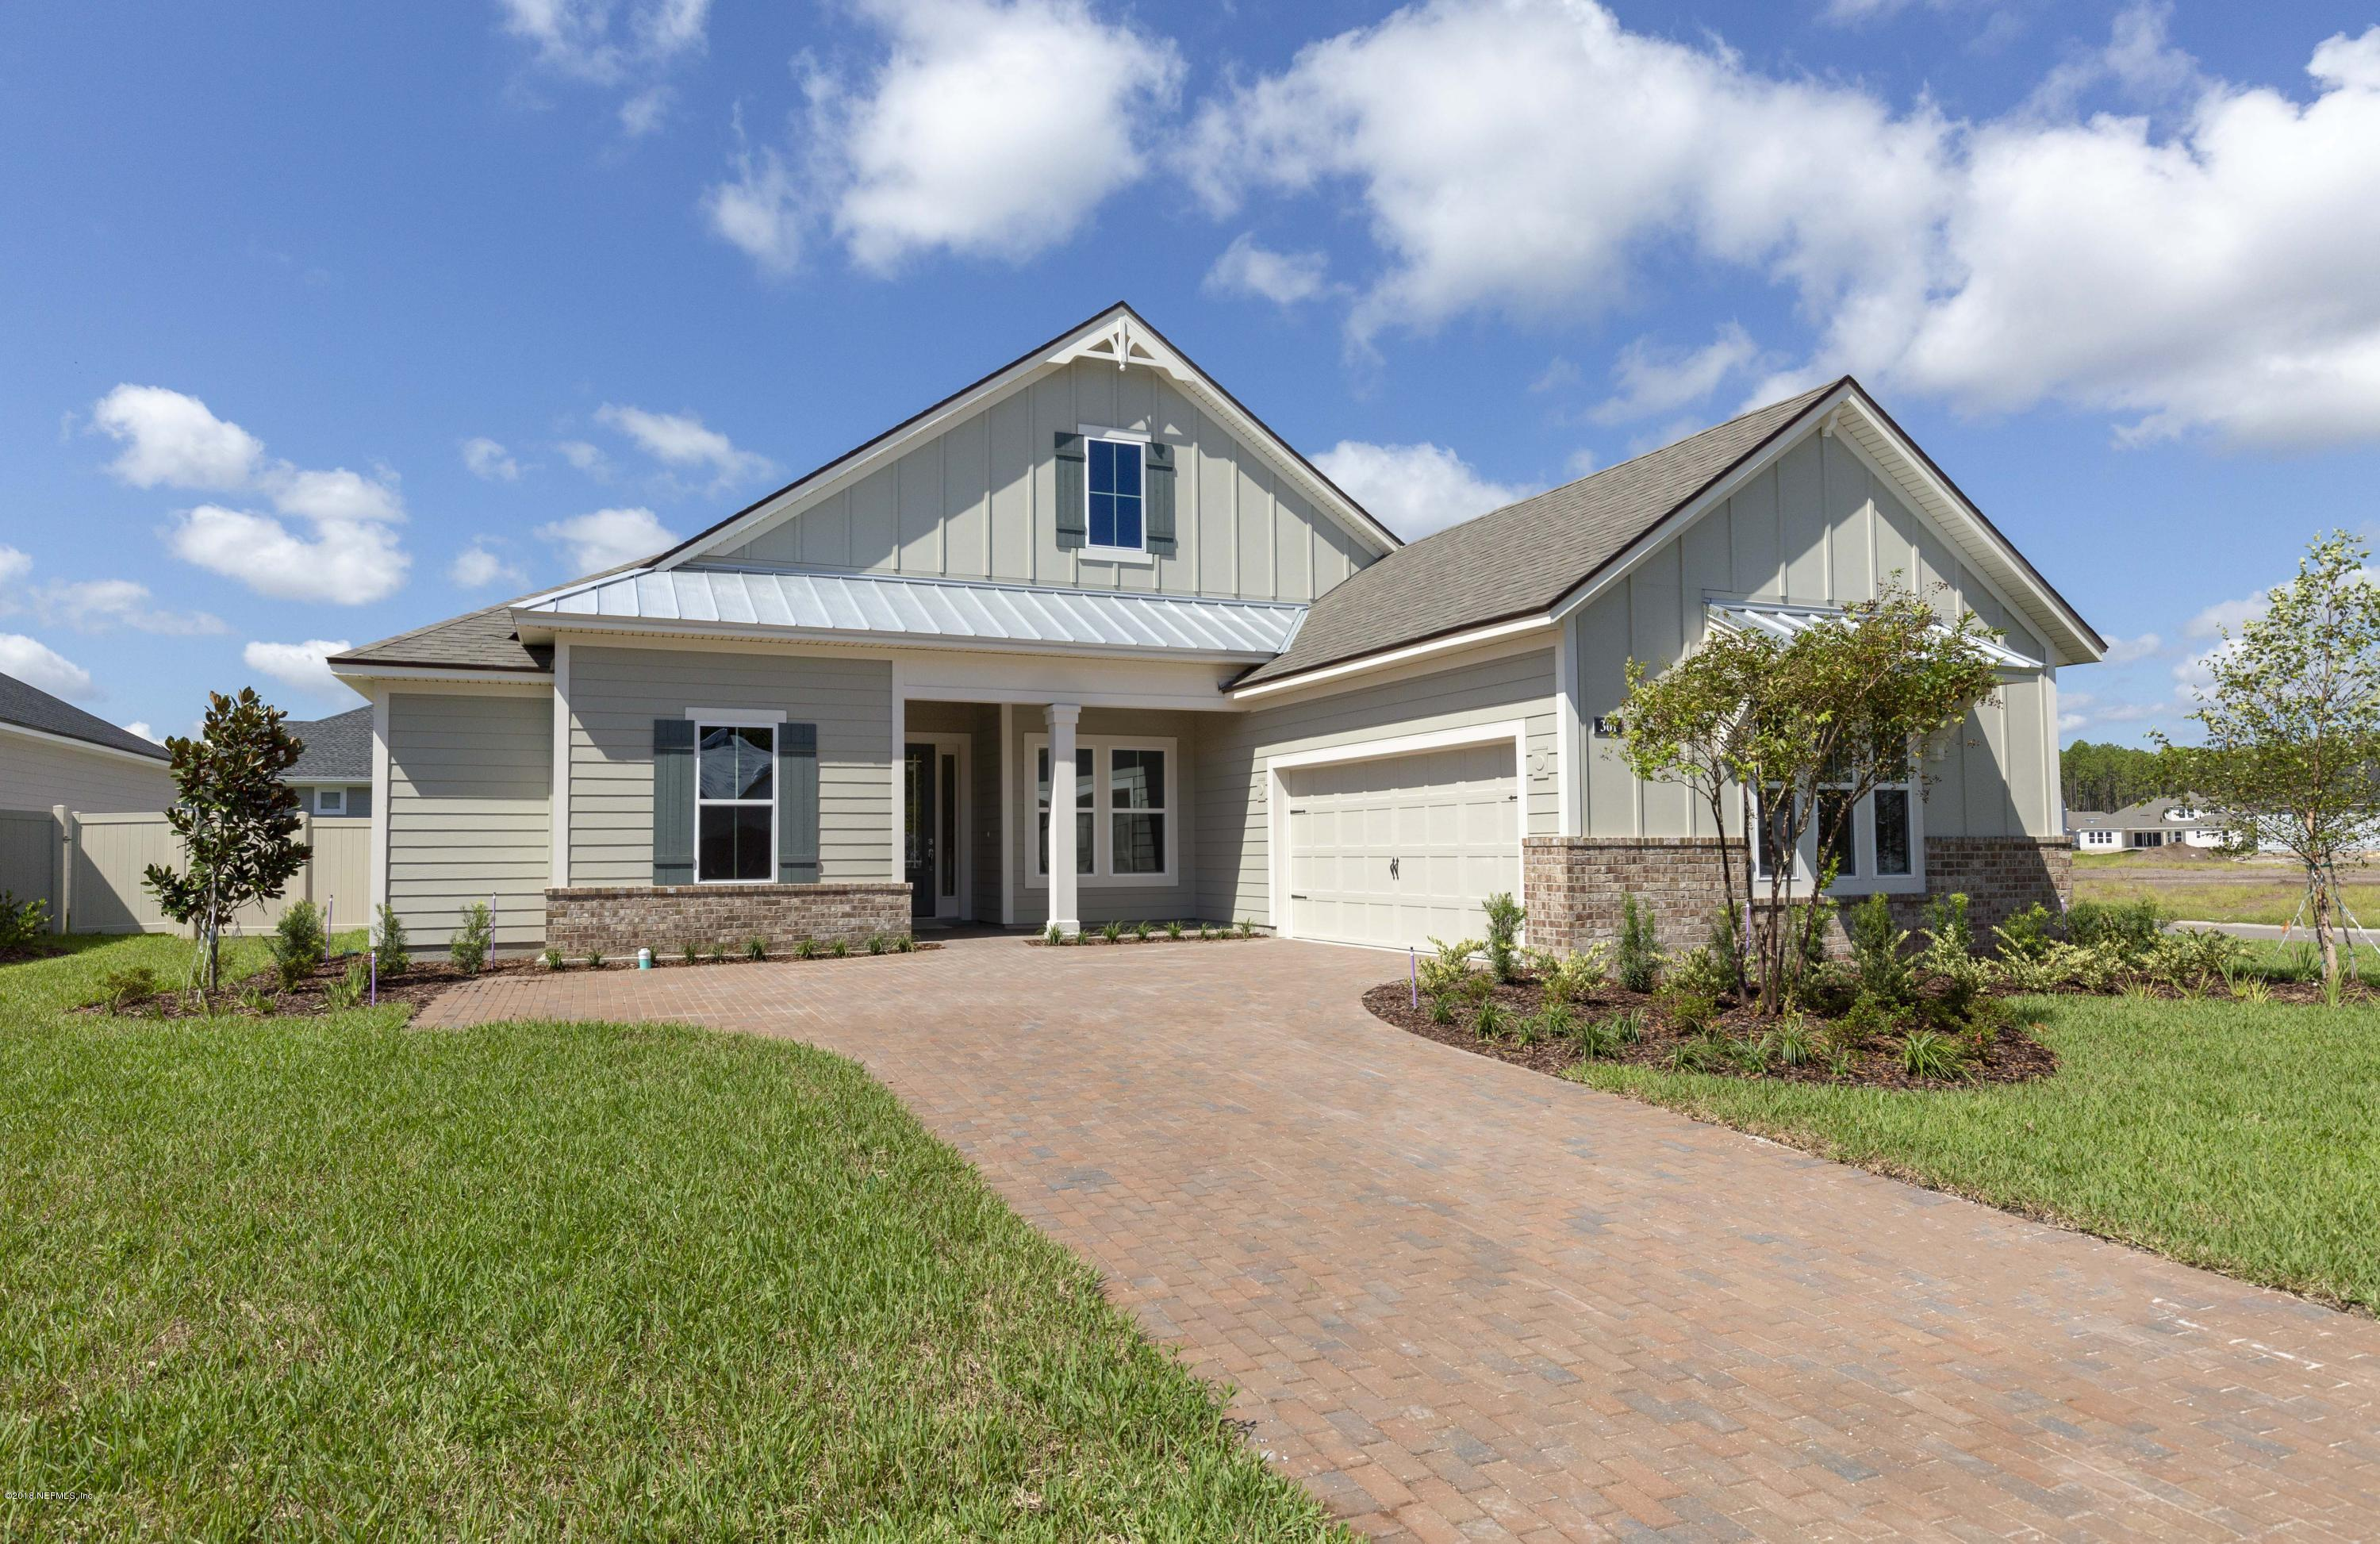 361 SPANISH CREEK, PONTE VEDRA, FLORIDA 32081, 4 Bedrooms Bedrooms, ,3 BathroomsBathrooms,Residential - single family,For sale,SPANISH CREEK,922464